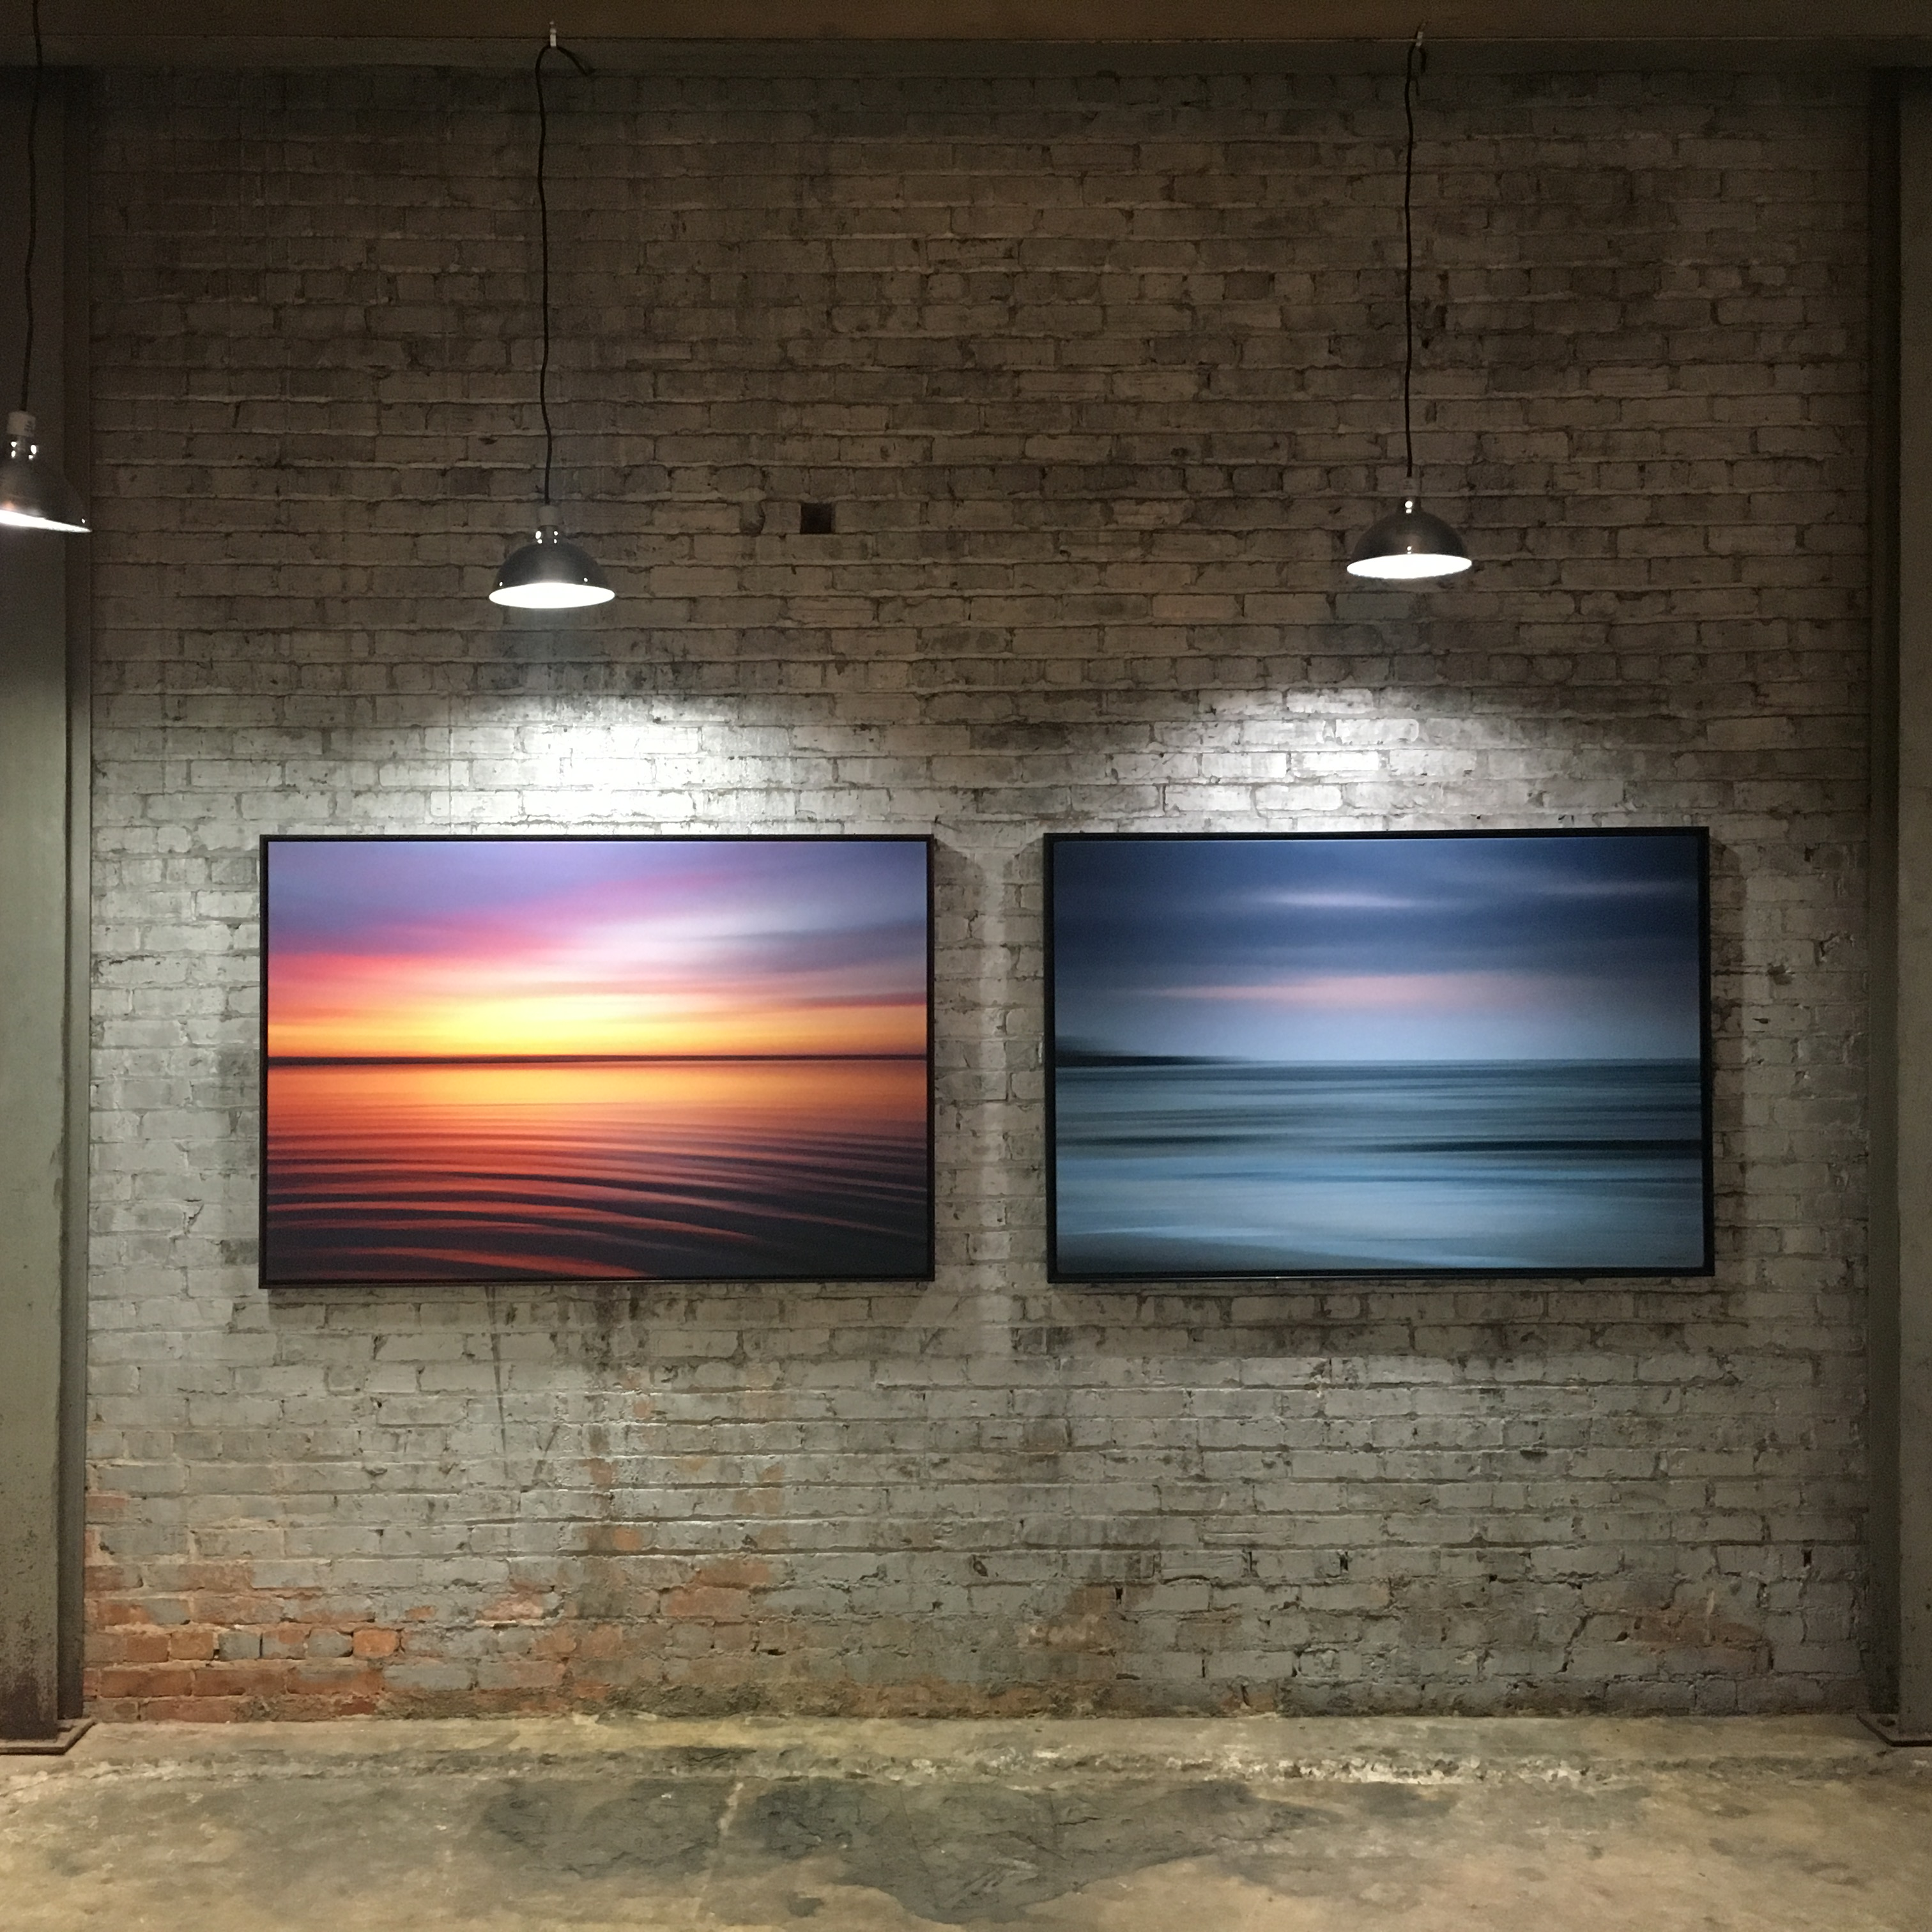 PHOTOS Pop-up art gallery opens Saturday at The Wedge in Asheville